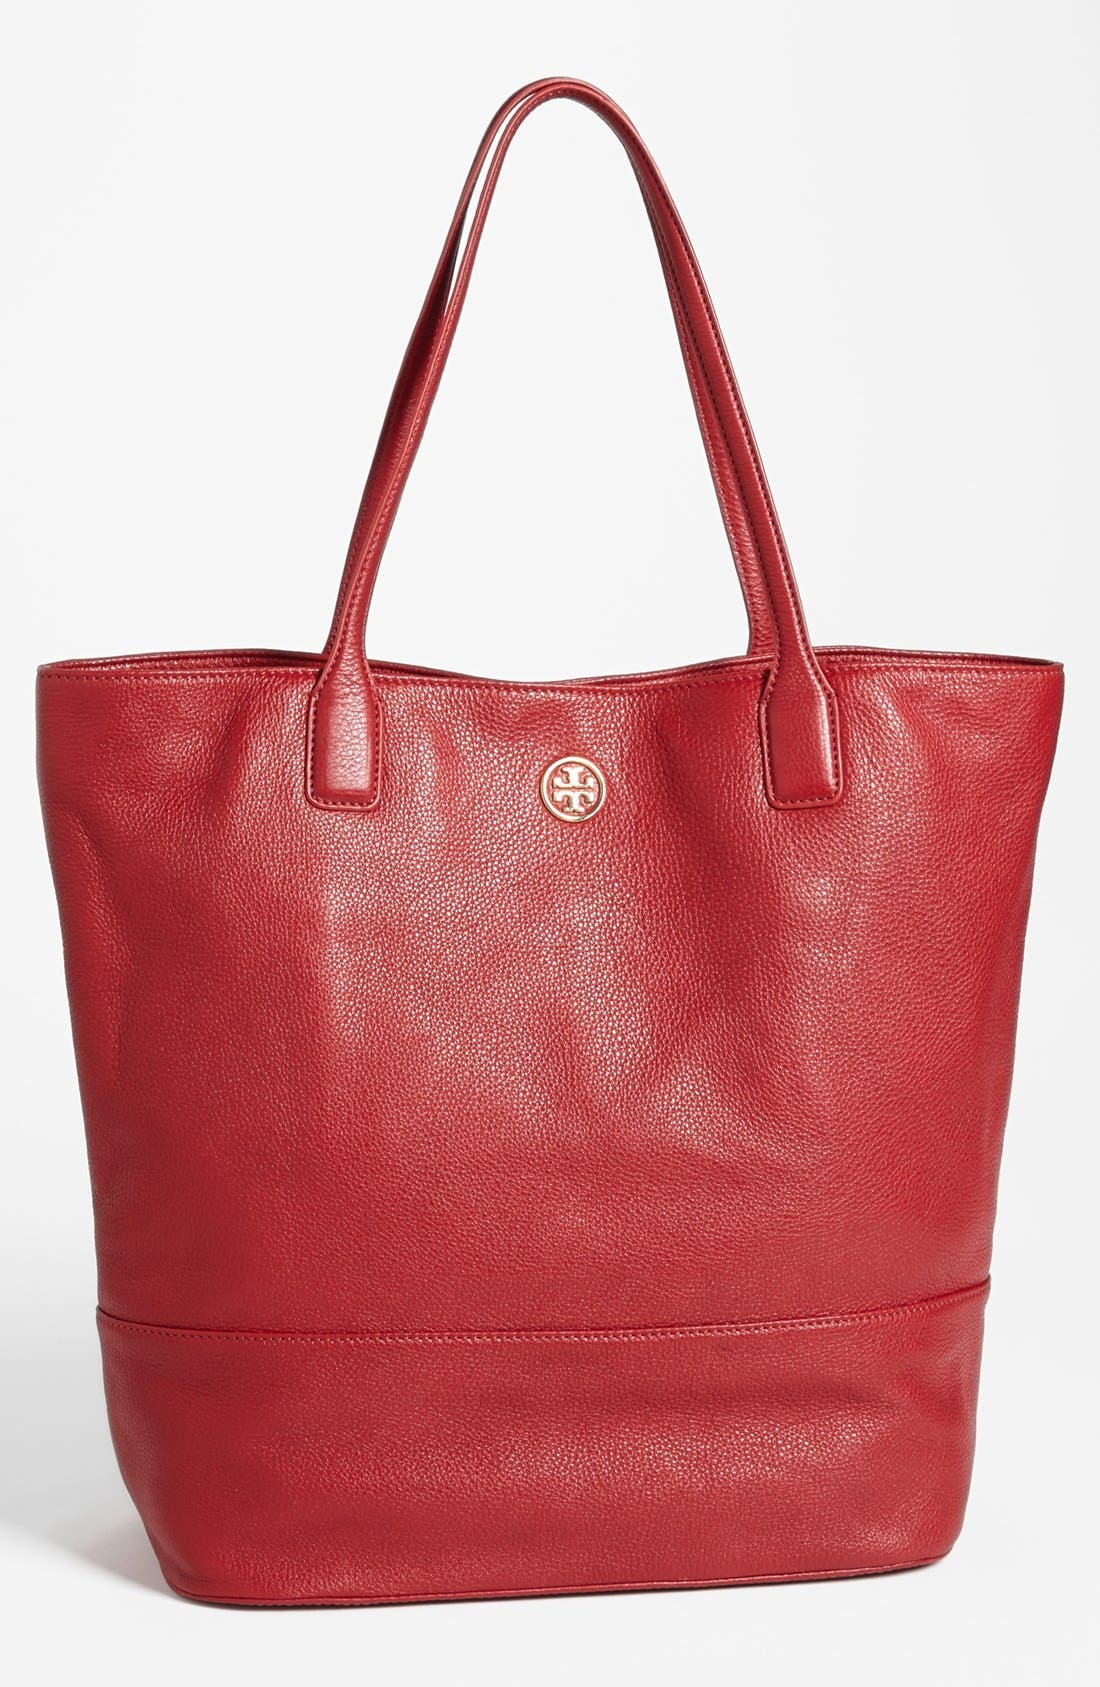 Main Image - Tory Burch 'Michelle' Tote